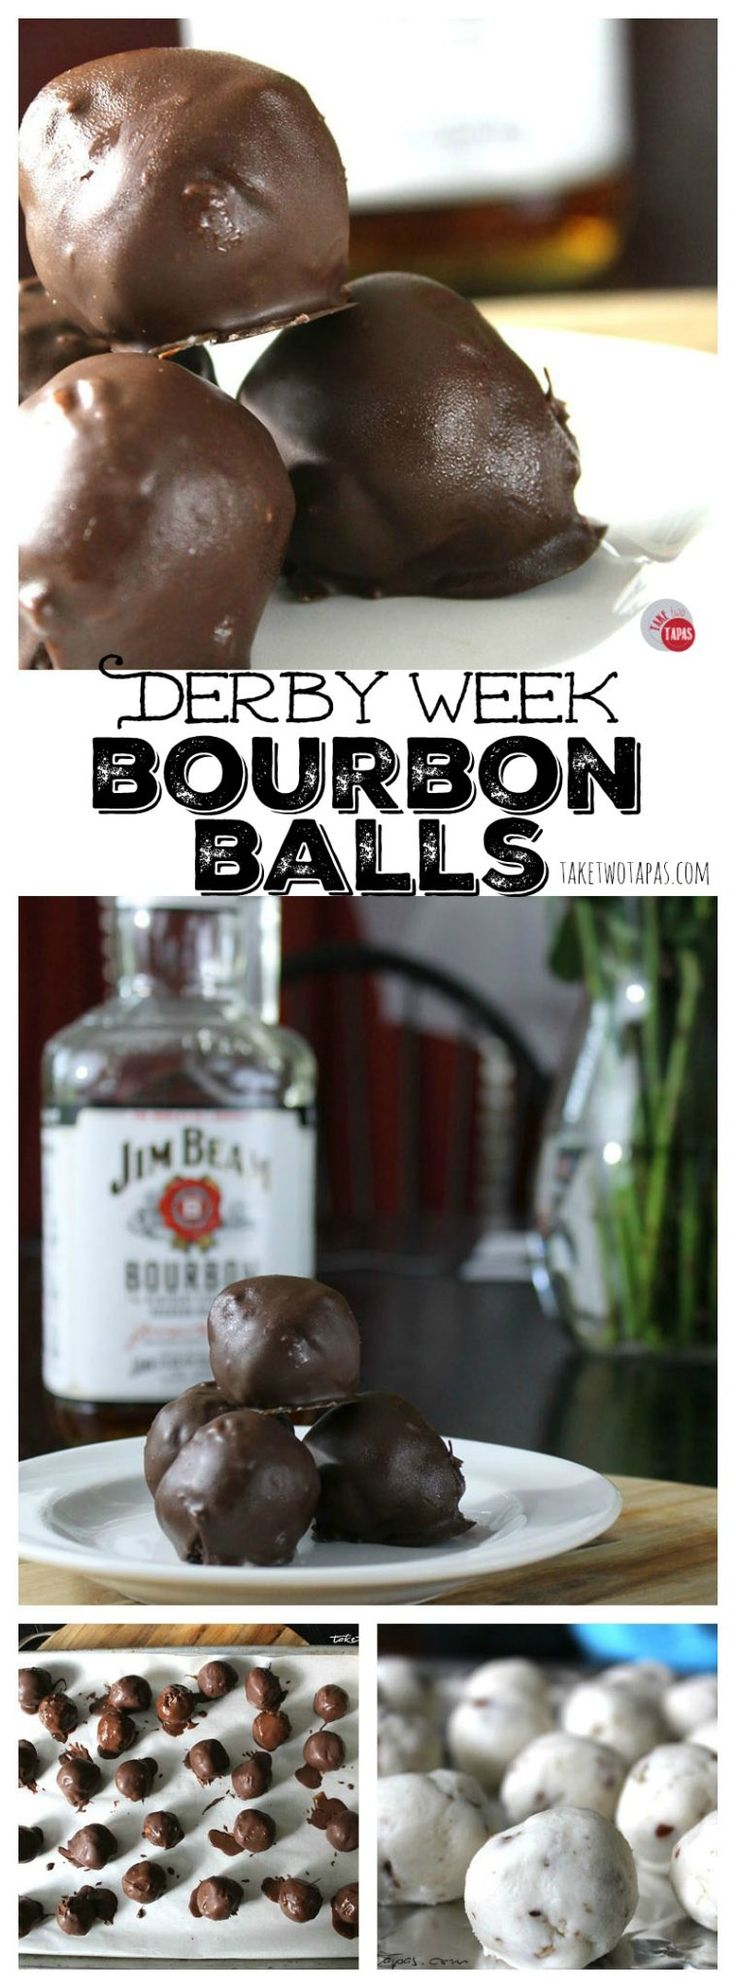 It wouldn't be the Kentucky Derby without bourbon! These chocolate-coated bourbon balls are the perfect snack to pop in your mouth while cheering on your favorite horse and jockey. These make great gifts if you are invited to a Derby party! Grab your hat or bow tie, and these bourbon balls, and down a mint julep! Derby Week Bourbon Balls Recipe | Take Two Tapas